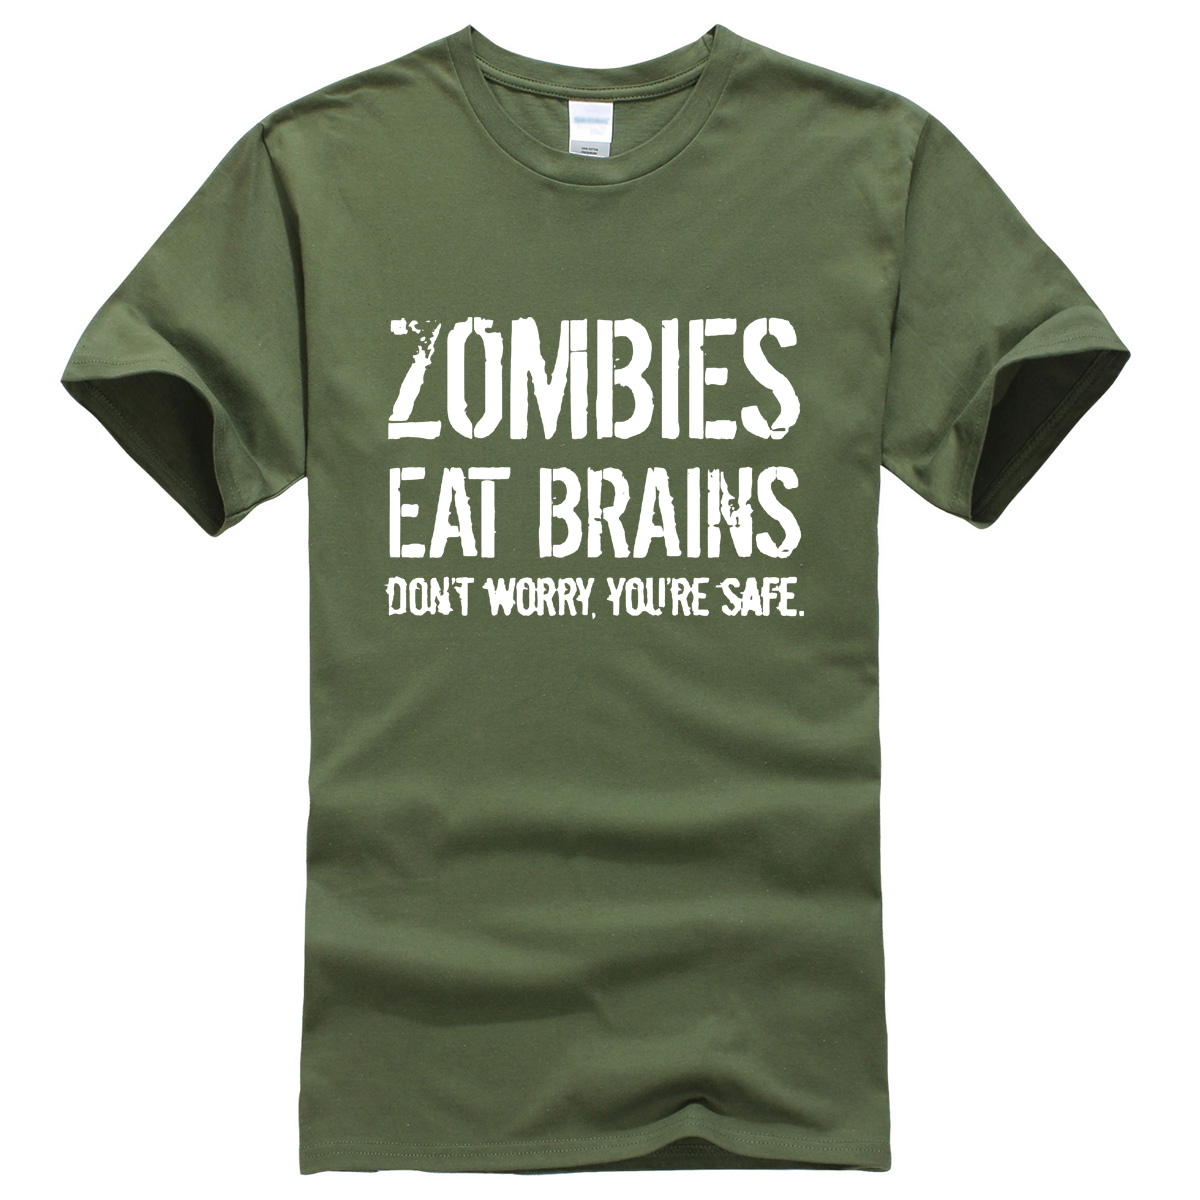 Men's T-shirts Zombies Eat Brains Printed 2019 Summer Casual Funny Brand-clothing T Shirt For Men Sportwear T-shirt Harajuku Top